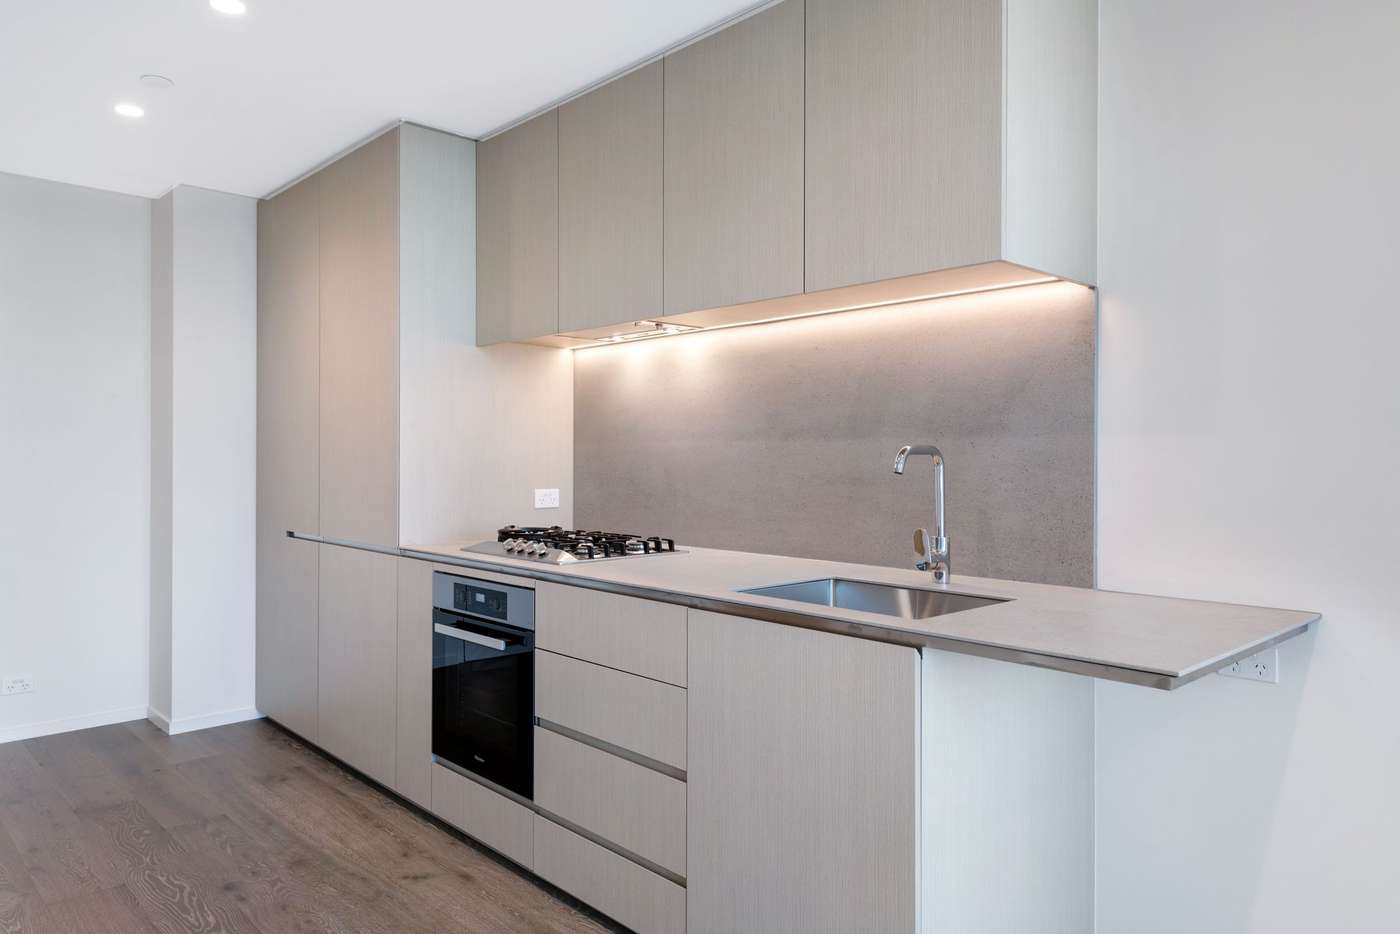 Main view of Homely apartment listing, 3708/70 Southbank Boulevard, Southbank VIC 3006